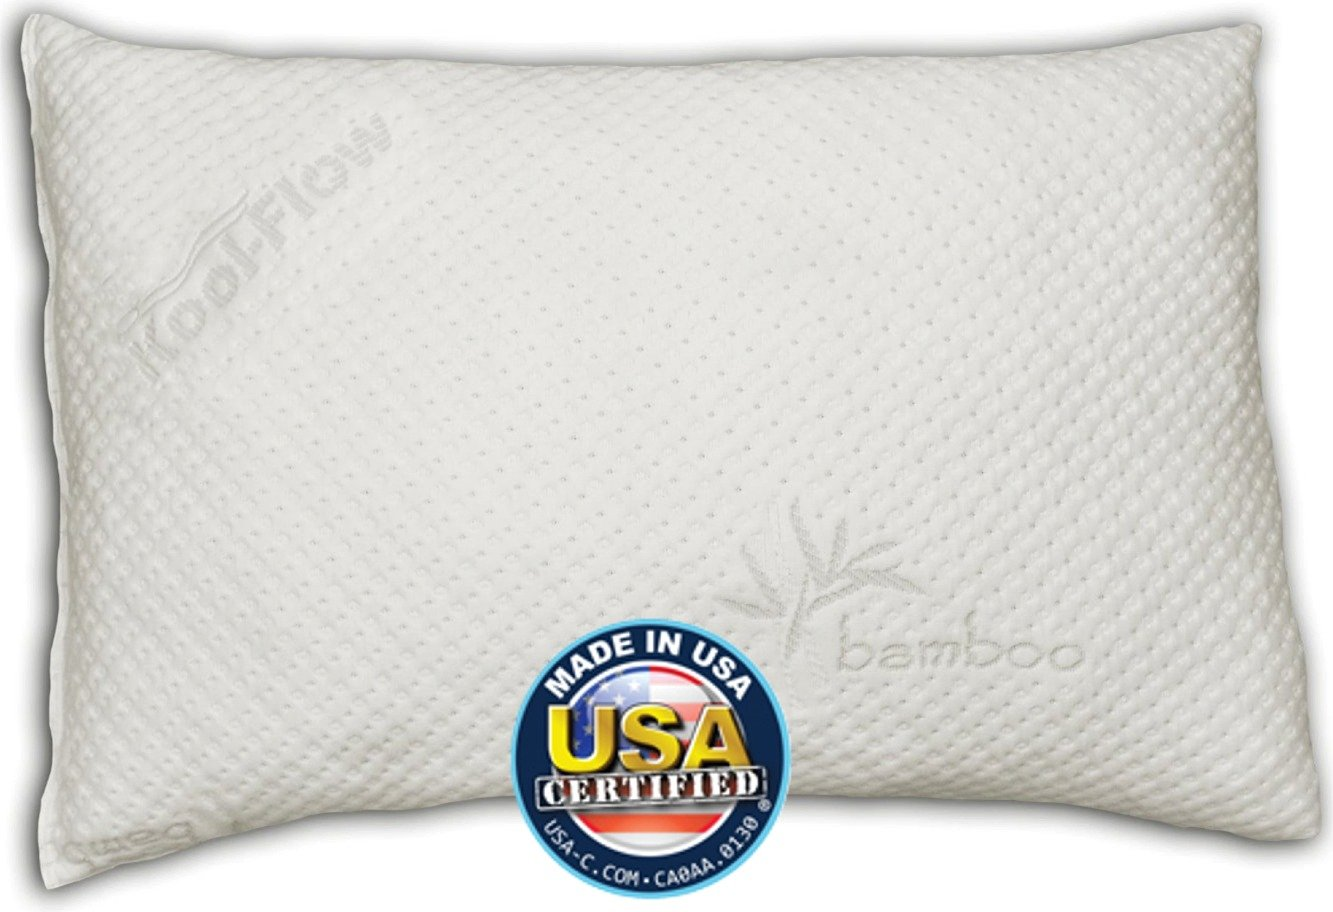 Best Pillow for Side Sleepers 2016 - nuggle-Pedic Bamboo Shredded Memory Foam Pillow